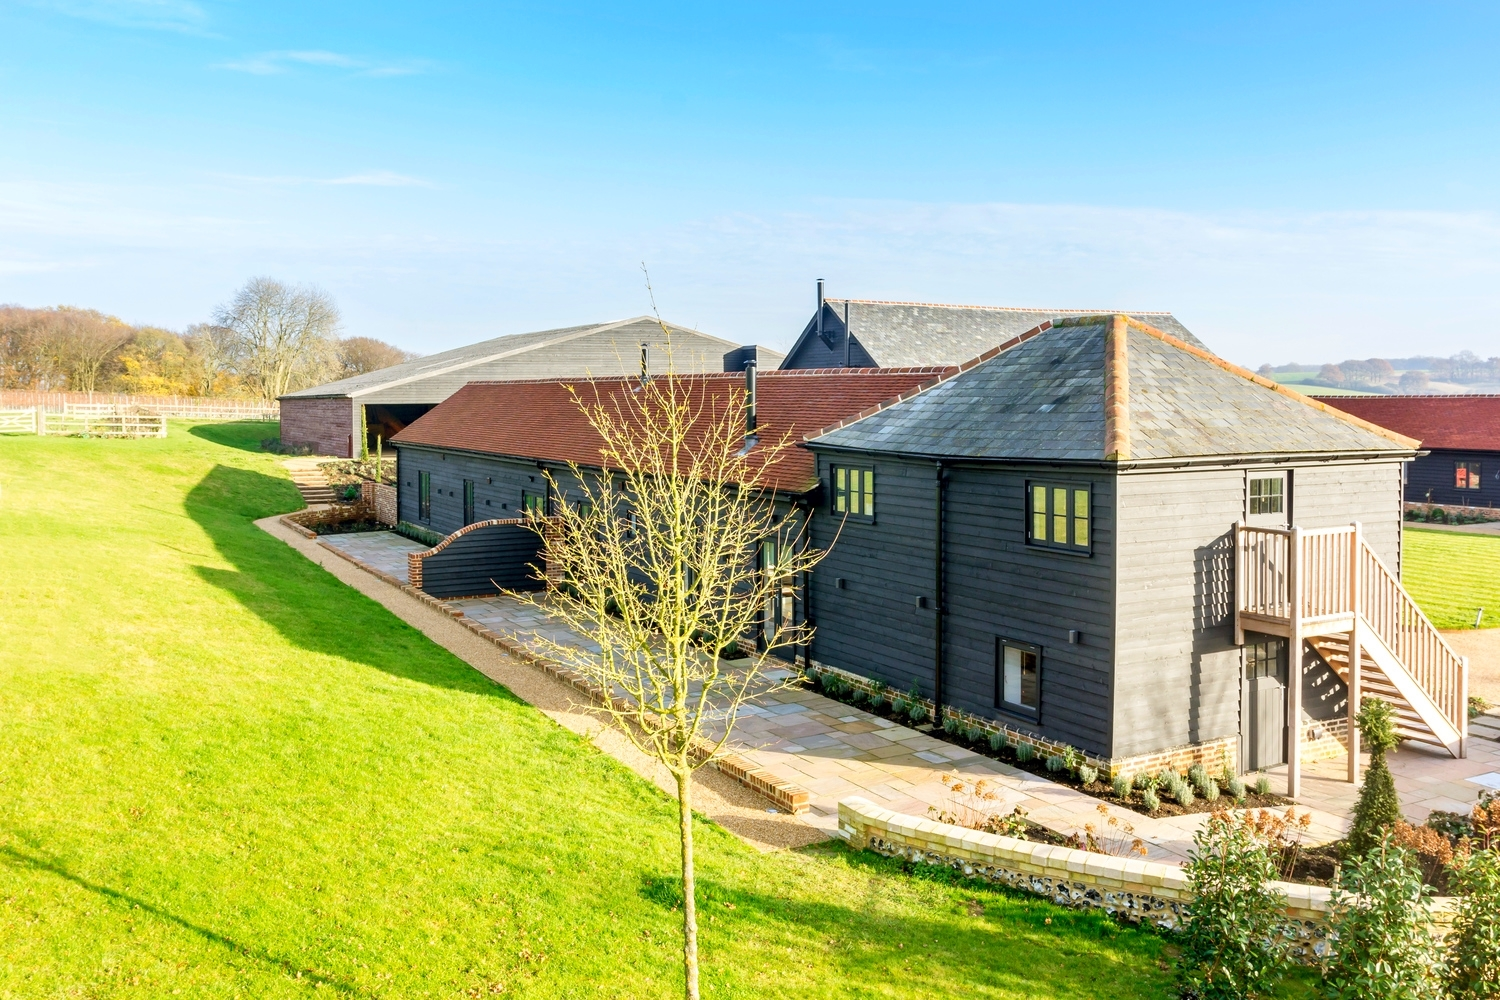 Lordship's Barns - Holiday homes in Hertfordshire